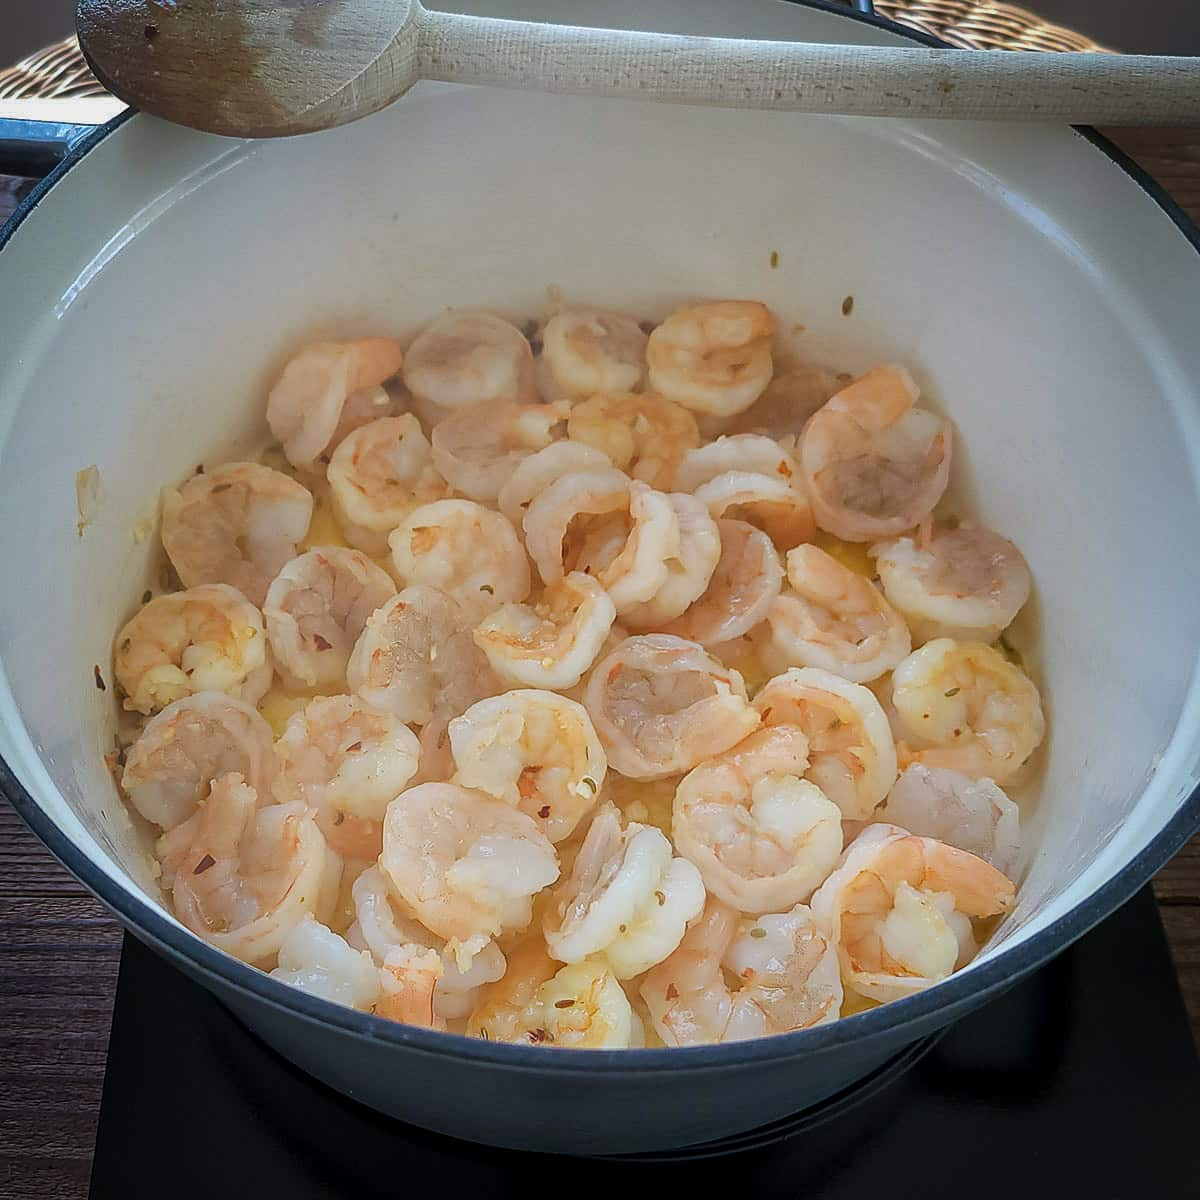 a large pot cooking shrimp with garlic in olive oil and butter